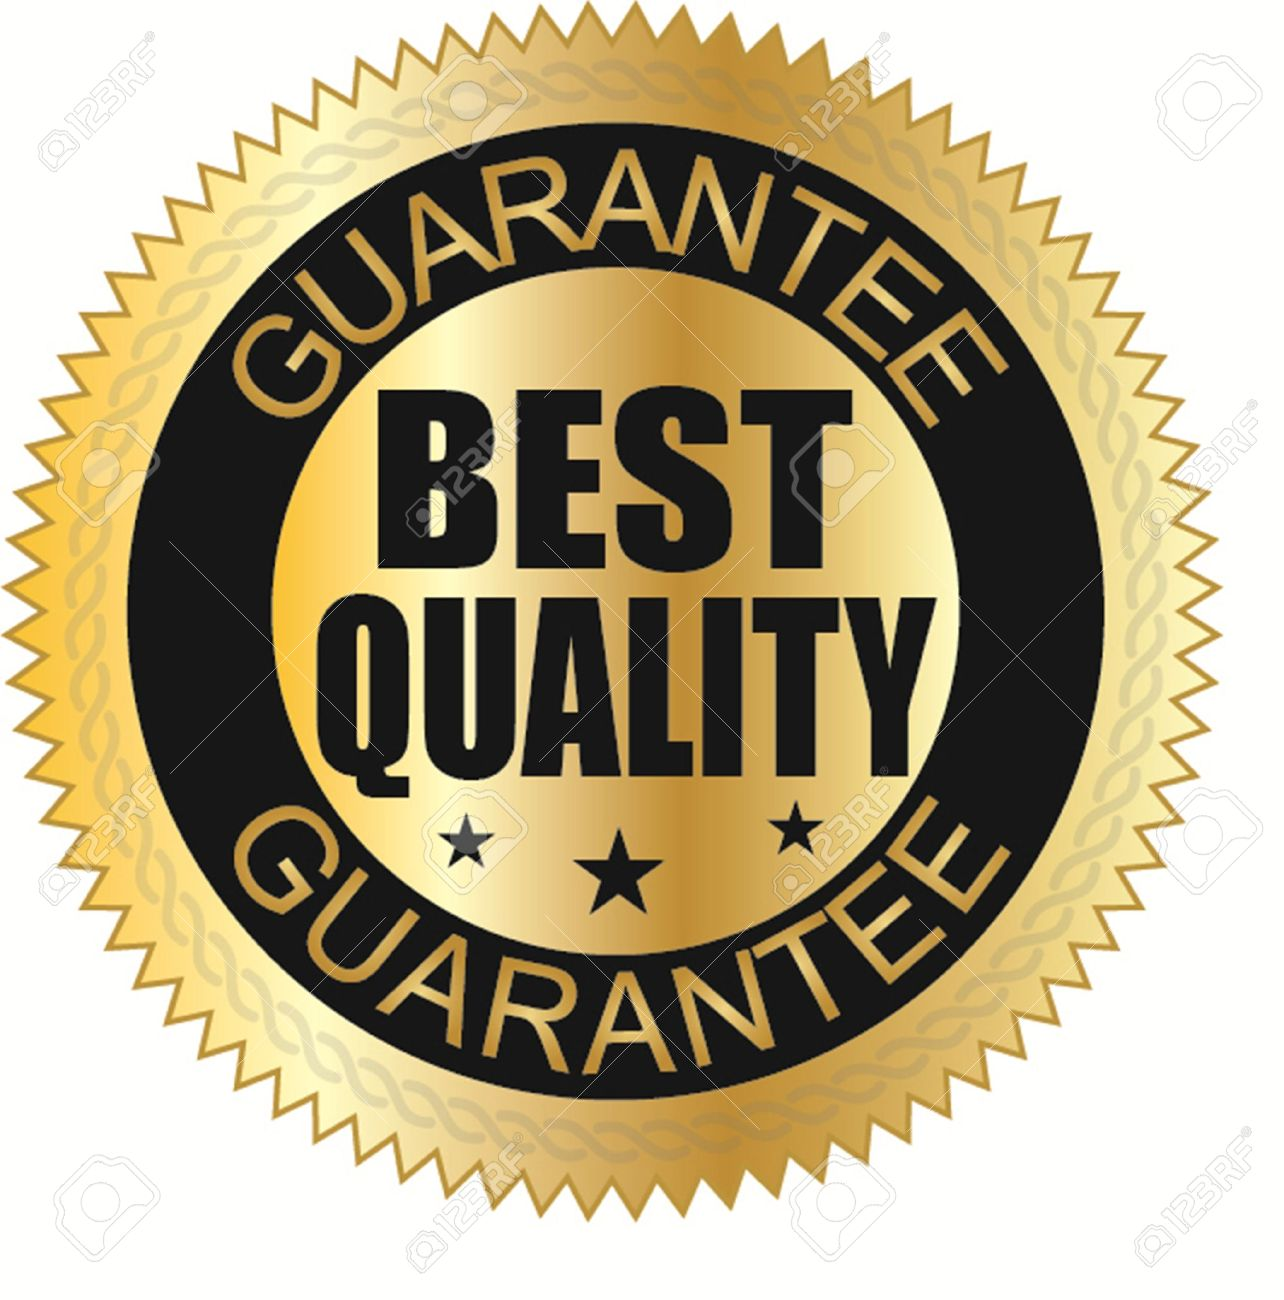 Best Quality Guaranteed Golden Label Vector Illustration Stock Vector 24472260